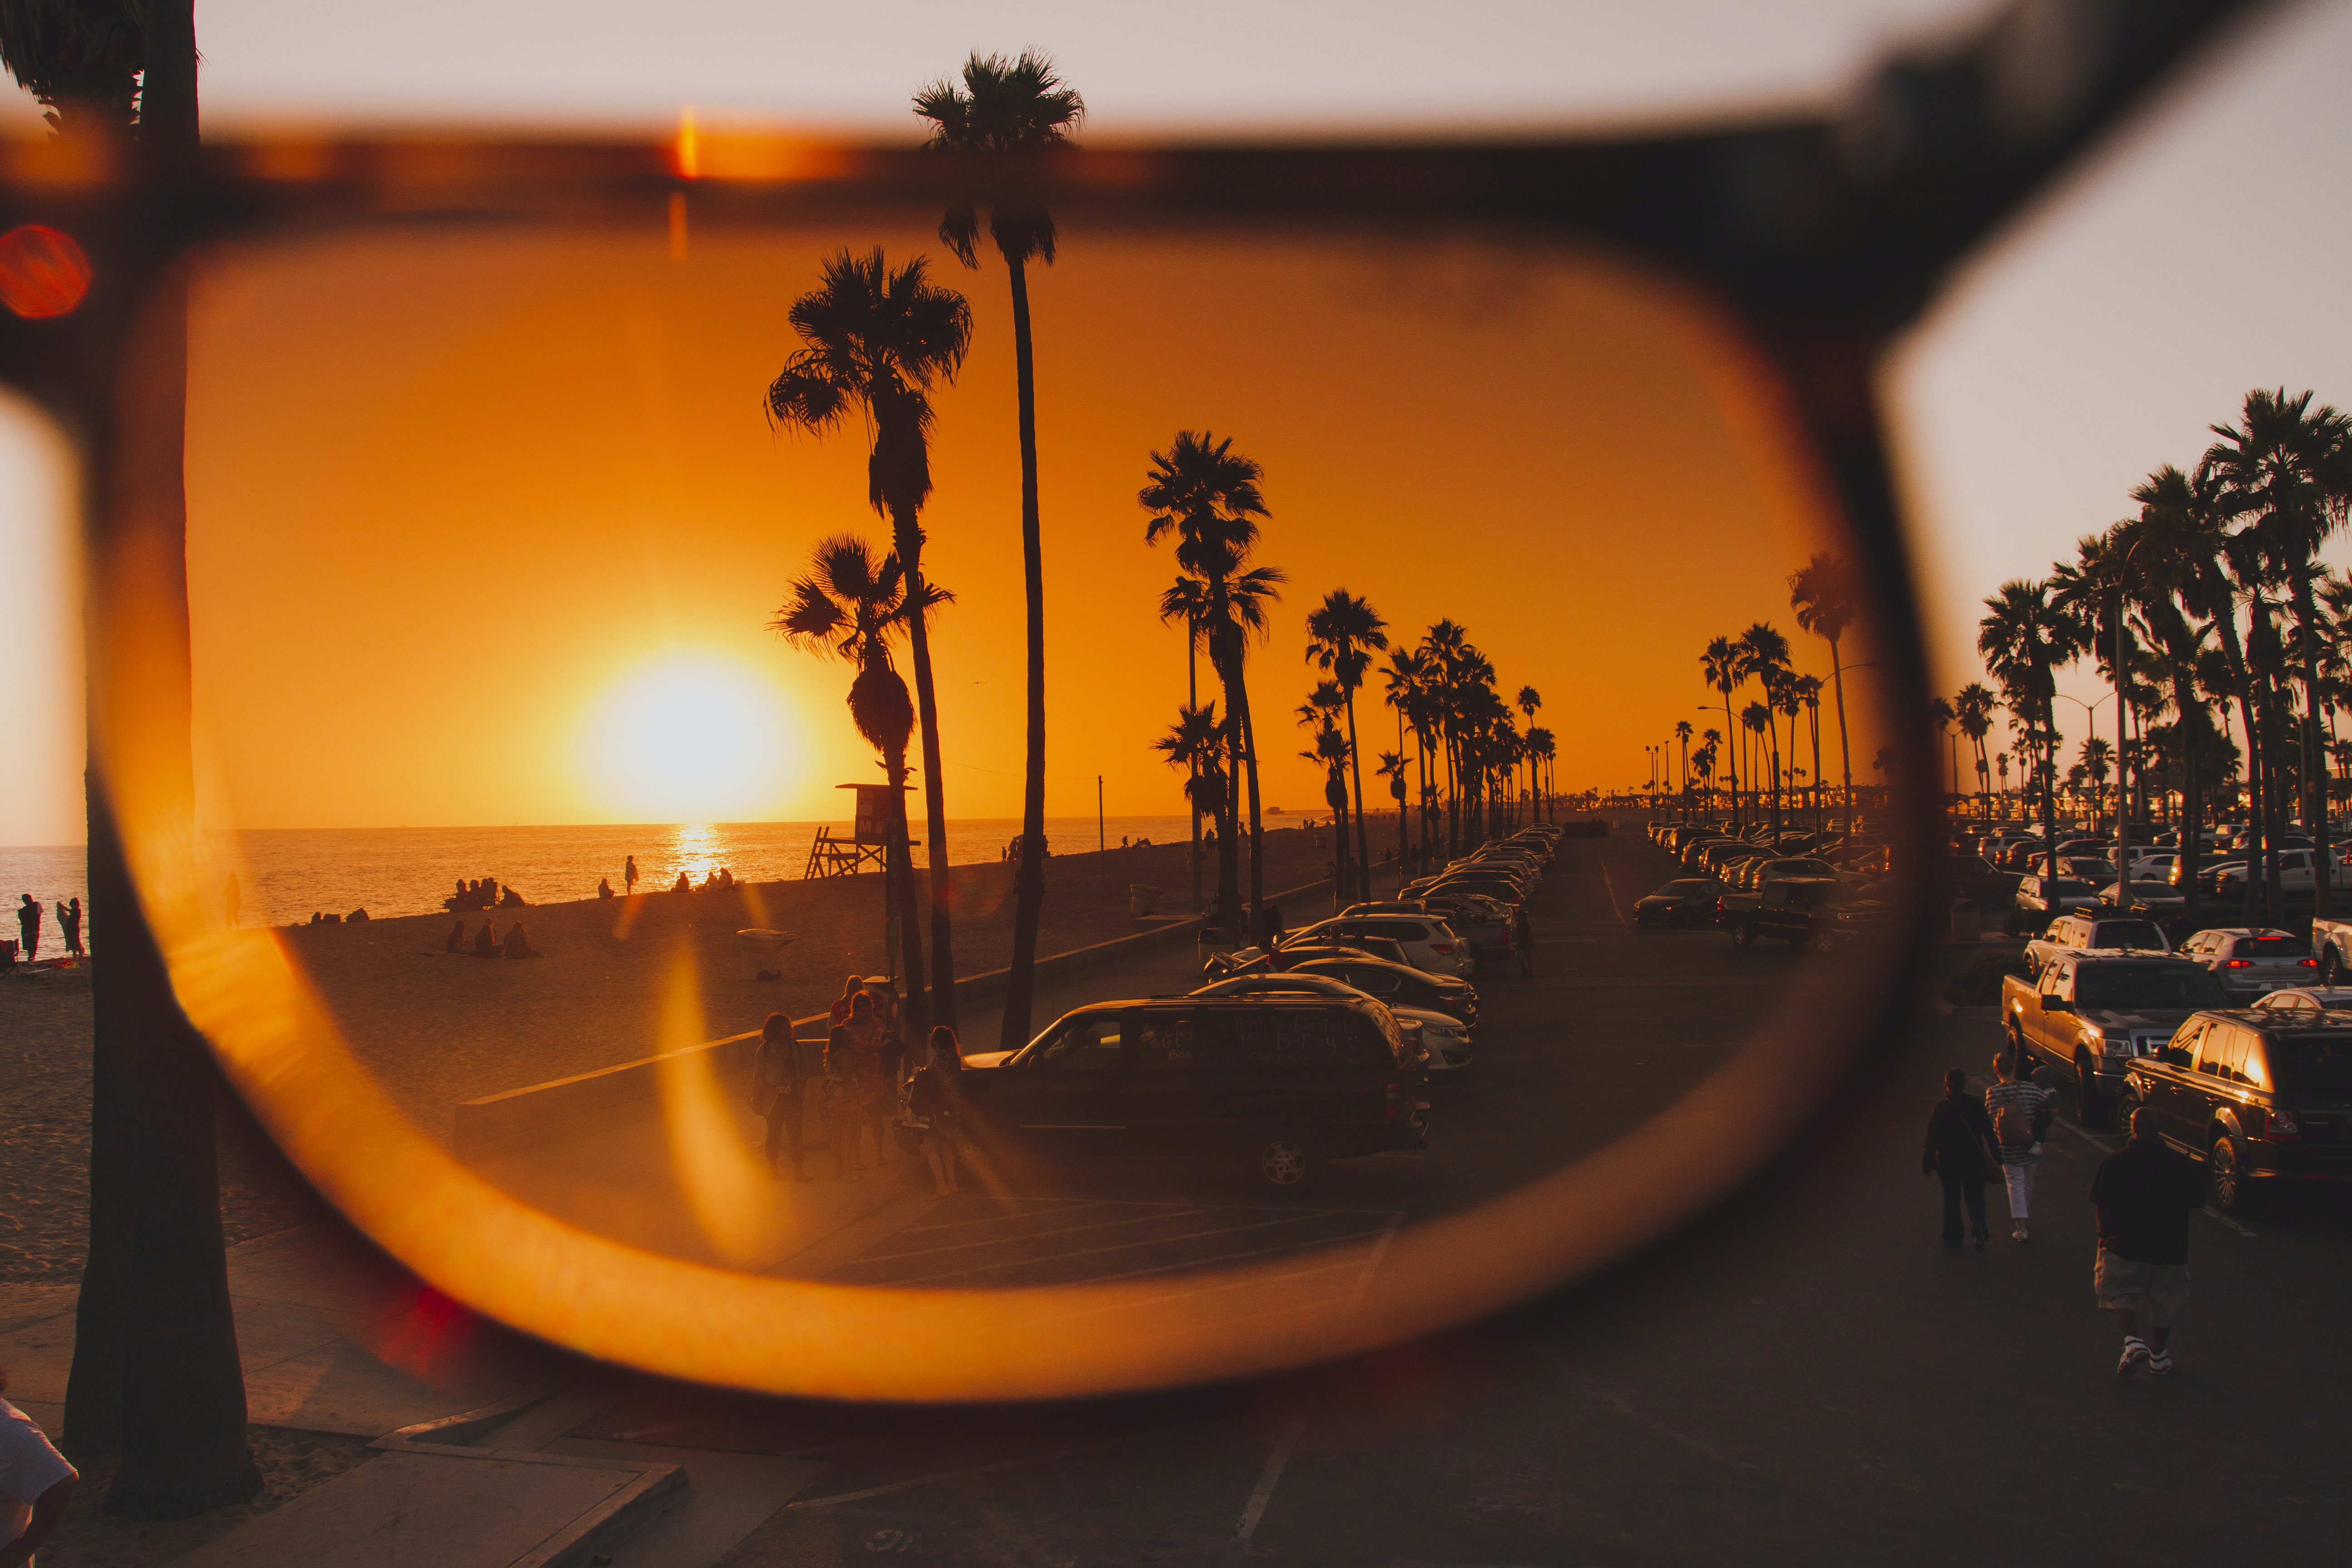 trees and sun photo on brown sunglasses